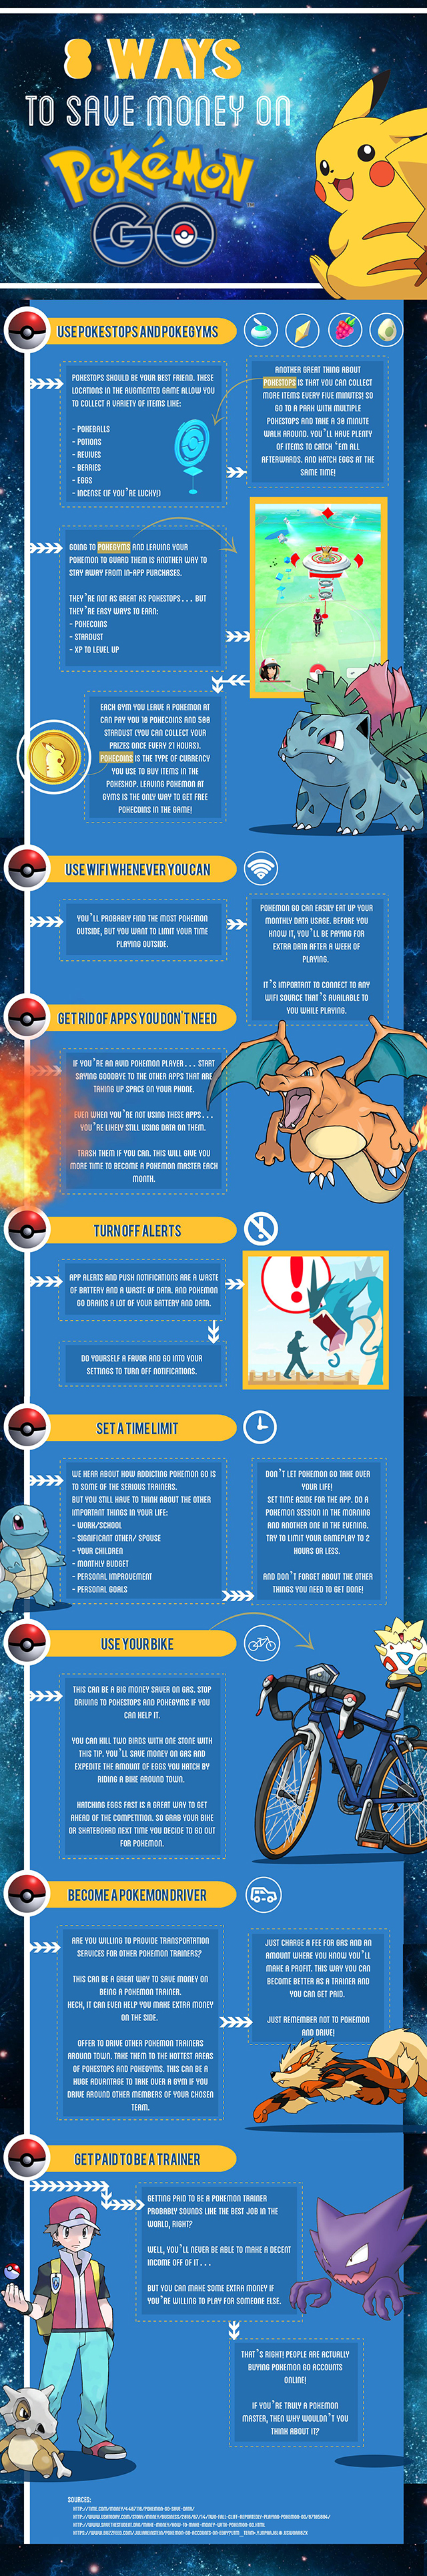 How You And Your Kids Can Save Money On Pokemon Go - Infographic